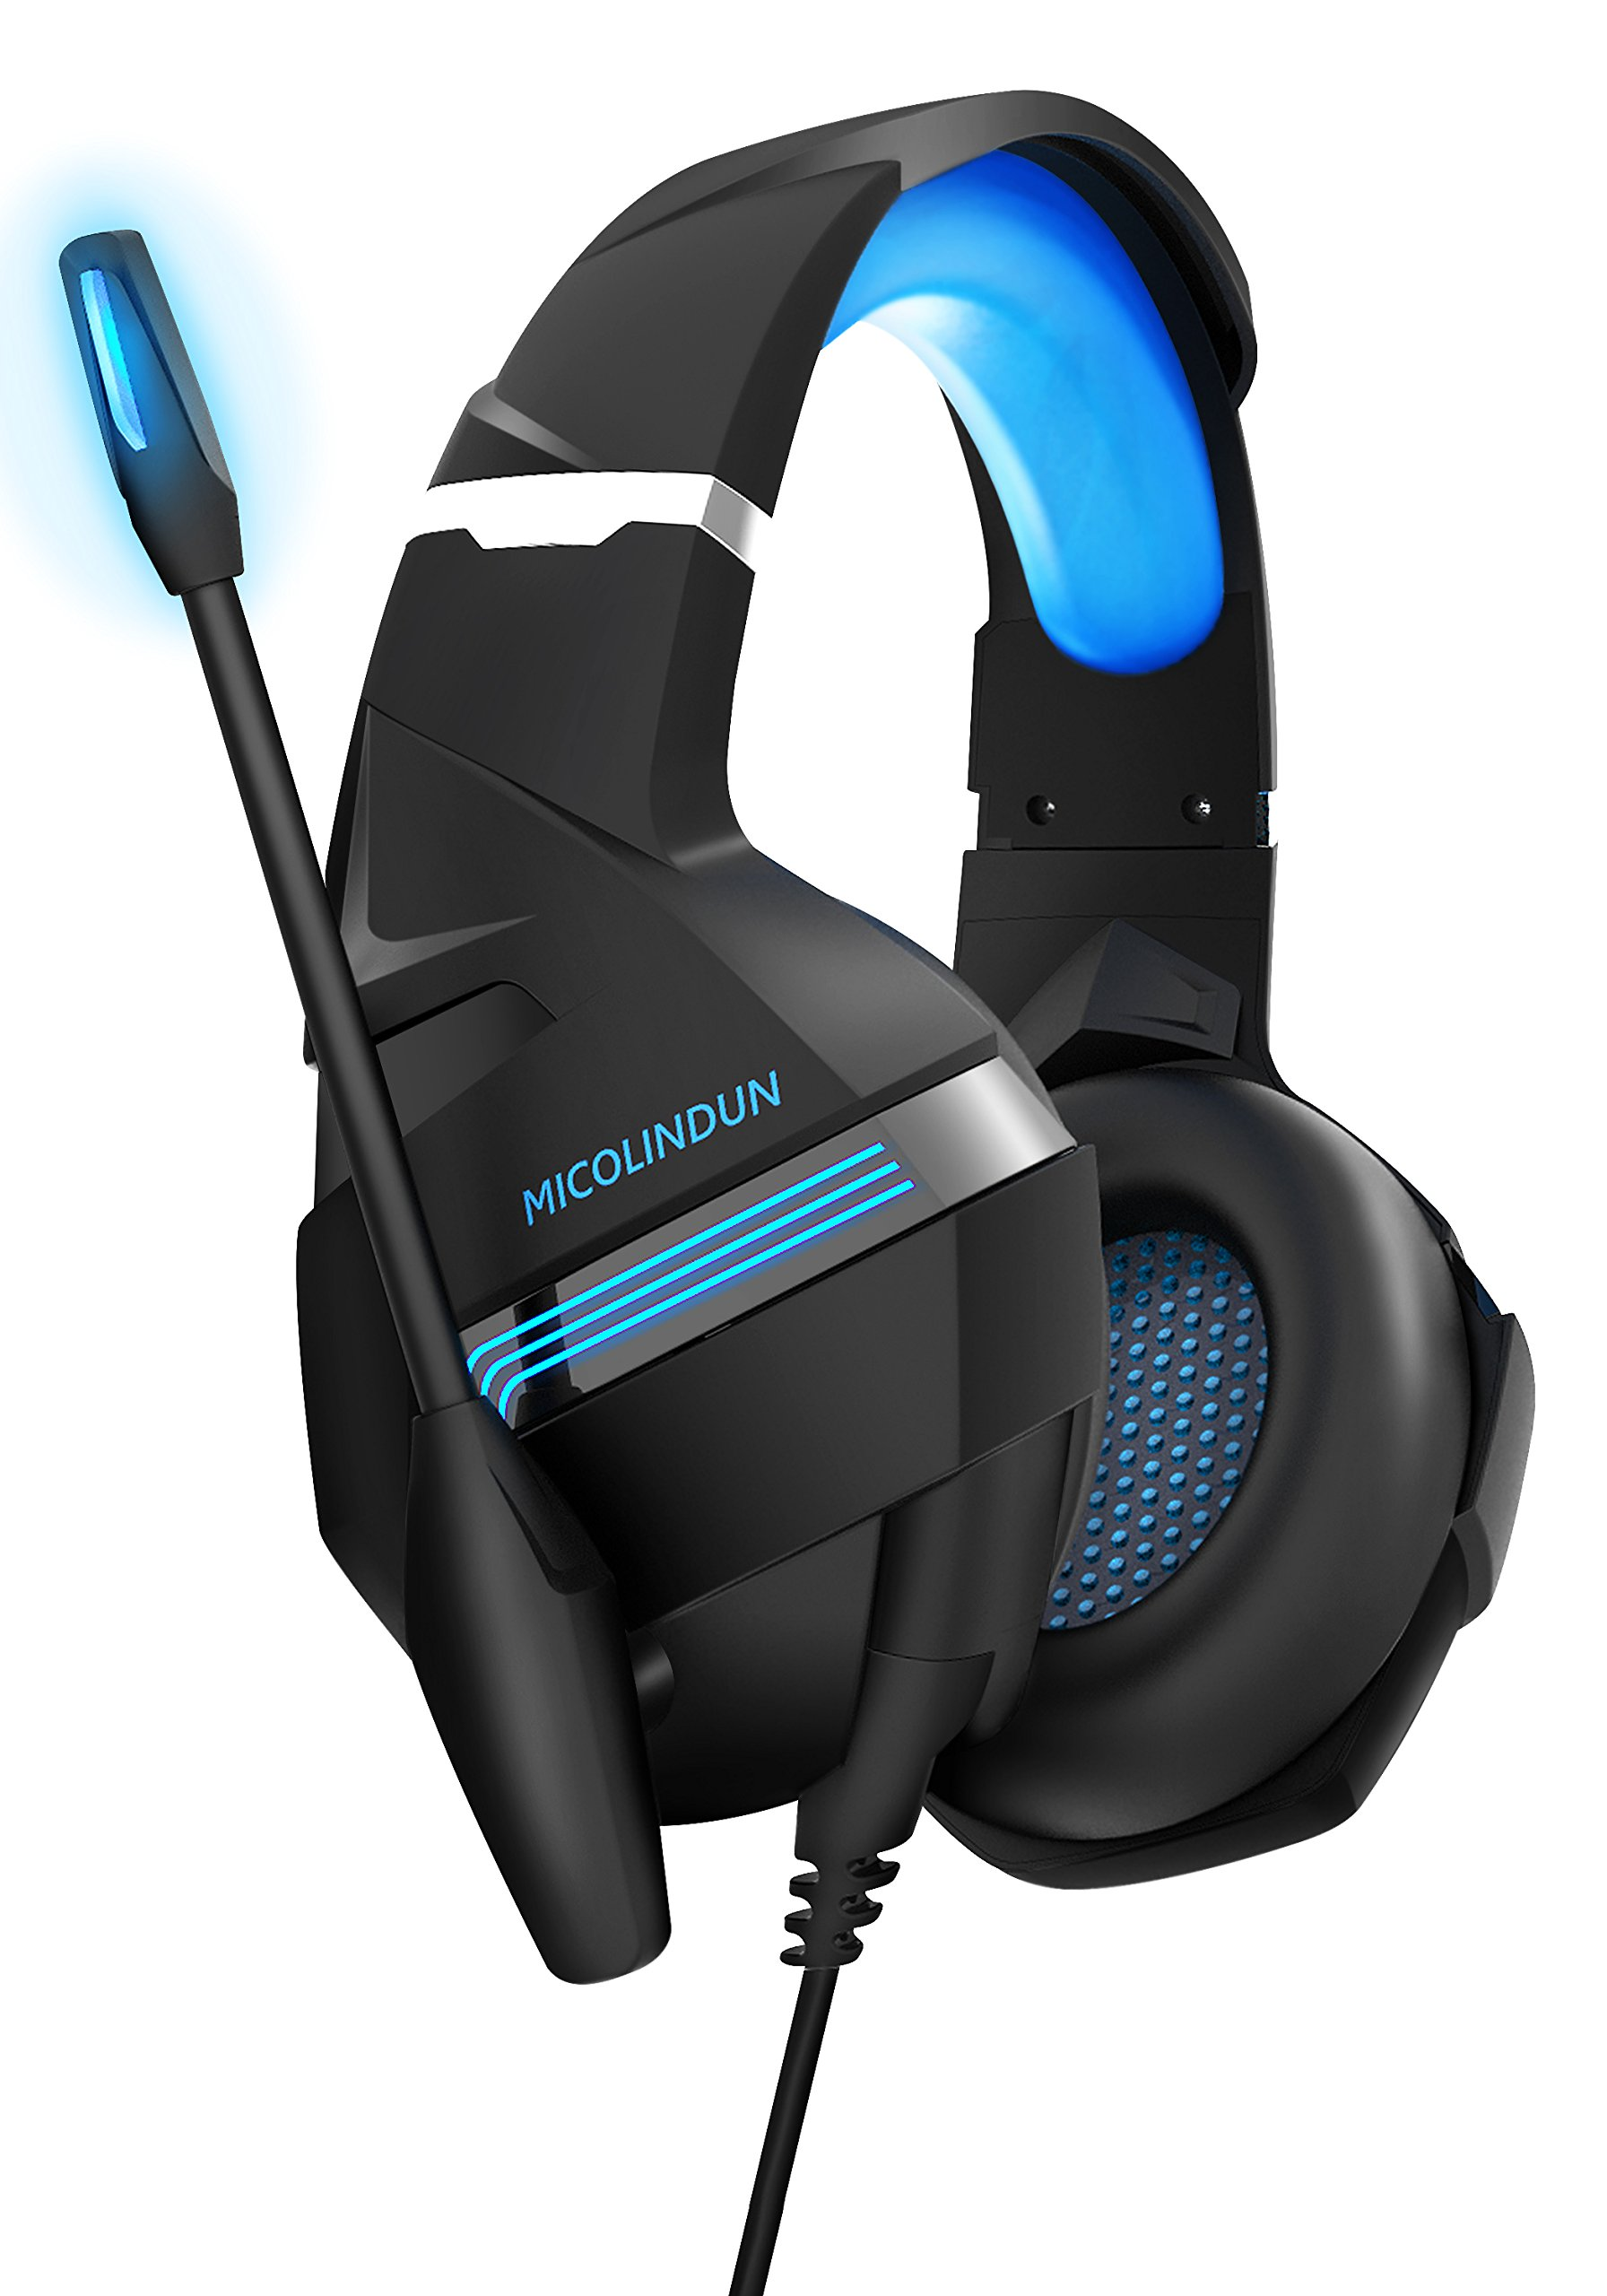 Micolindun MG9 Gaming Headset for Xbox ONE PS4 Headphones with Mic Stereo Sound Noise Cancelling Microphone LED Light Soft Over Ear Earmuffs for PS4, Xbox One, PC, Nintendo Switch, Smart Phone,Laptop